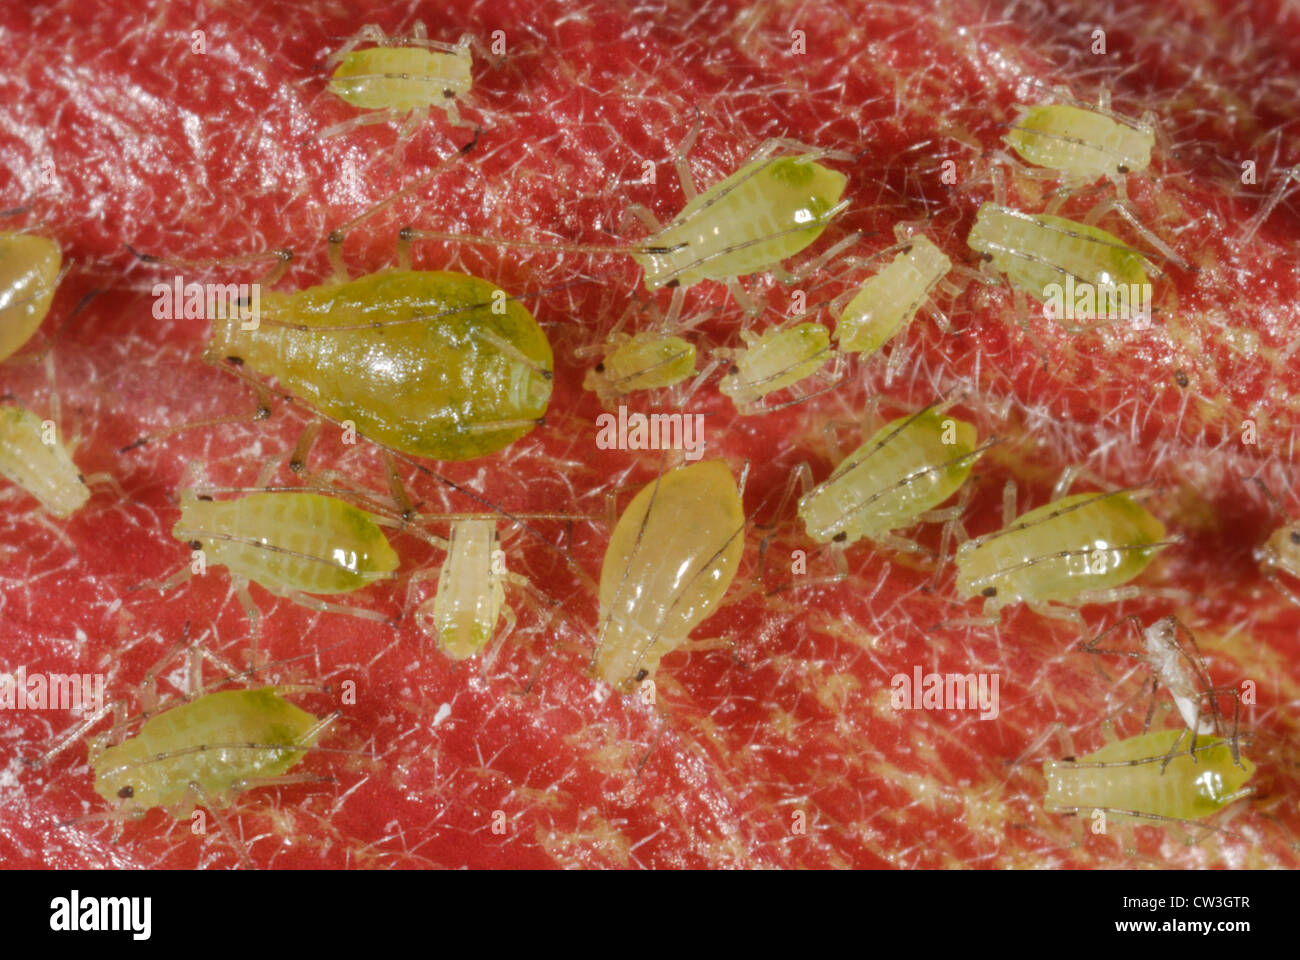 Mottled arum aphid (Aulacorthum circumflexum) adults on a red Hibiscus flower - Stock Image